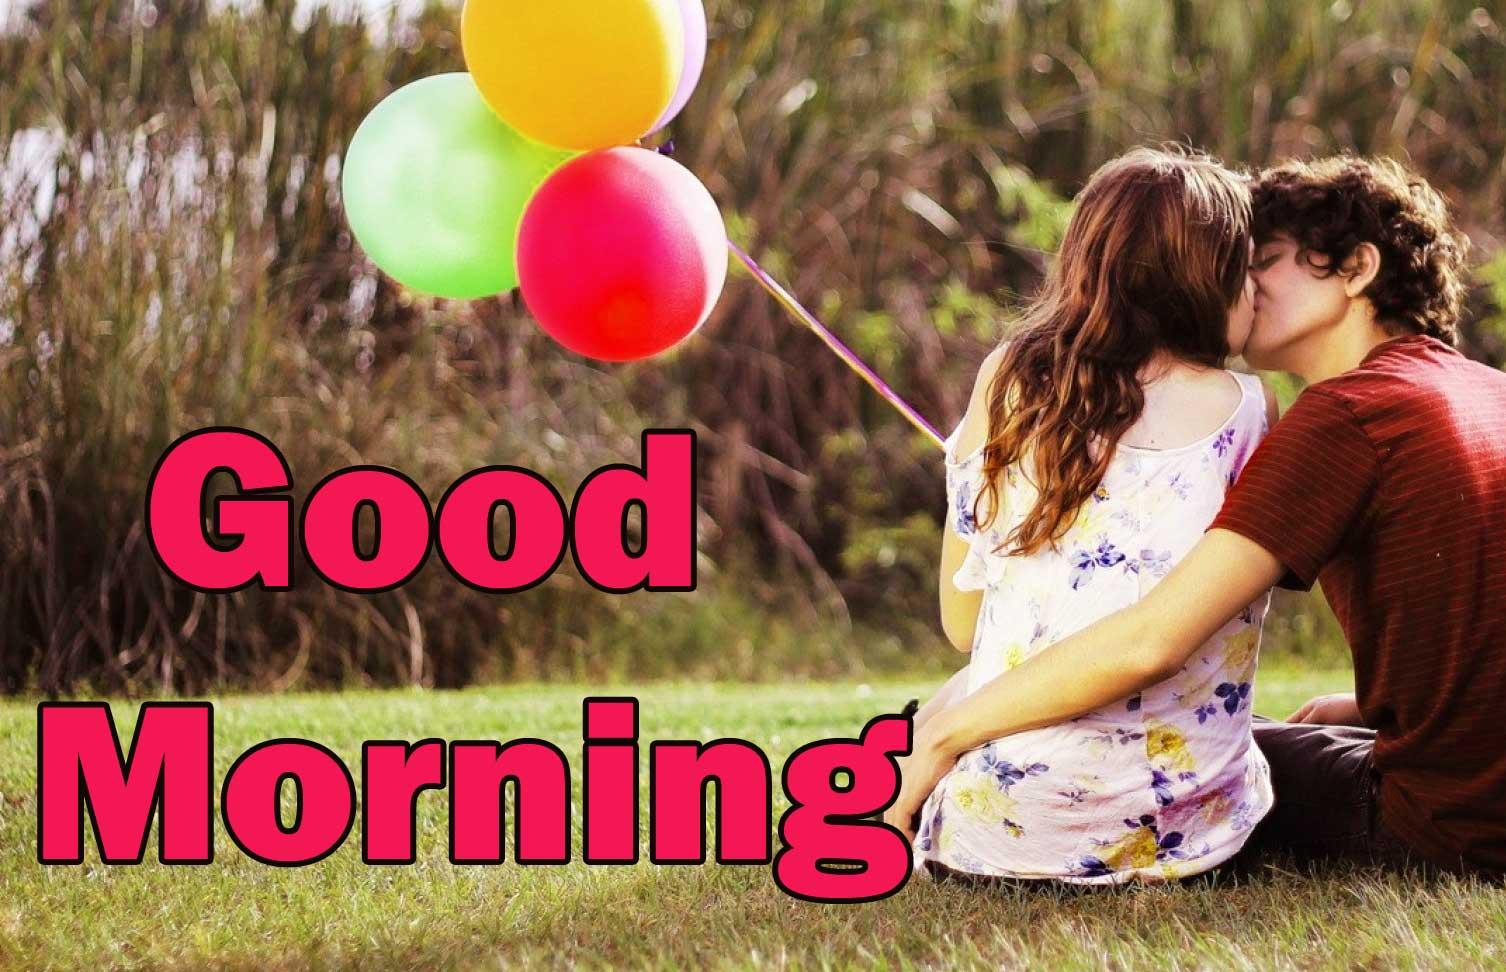 Romantic Love Couple Good Morning 17